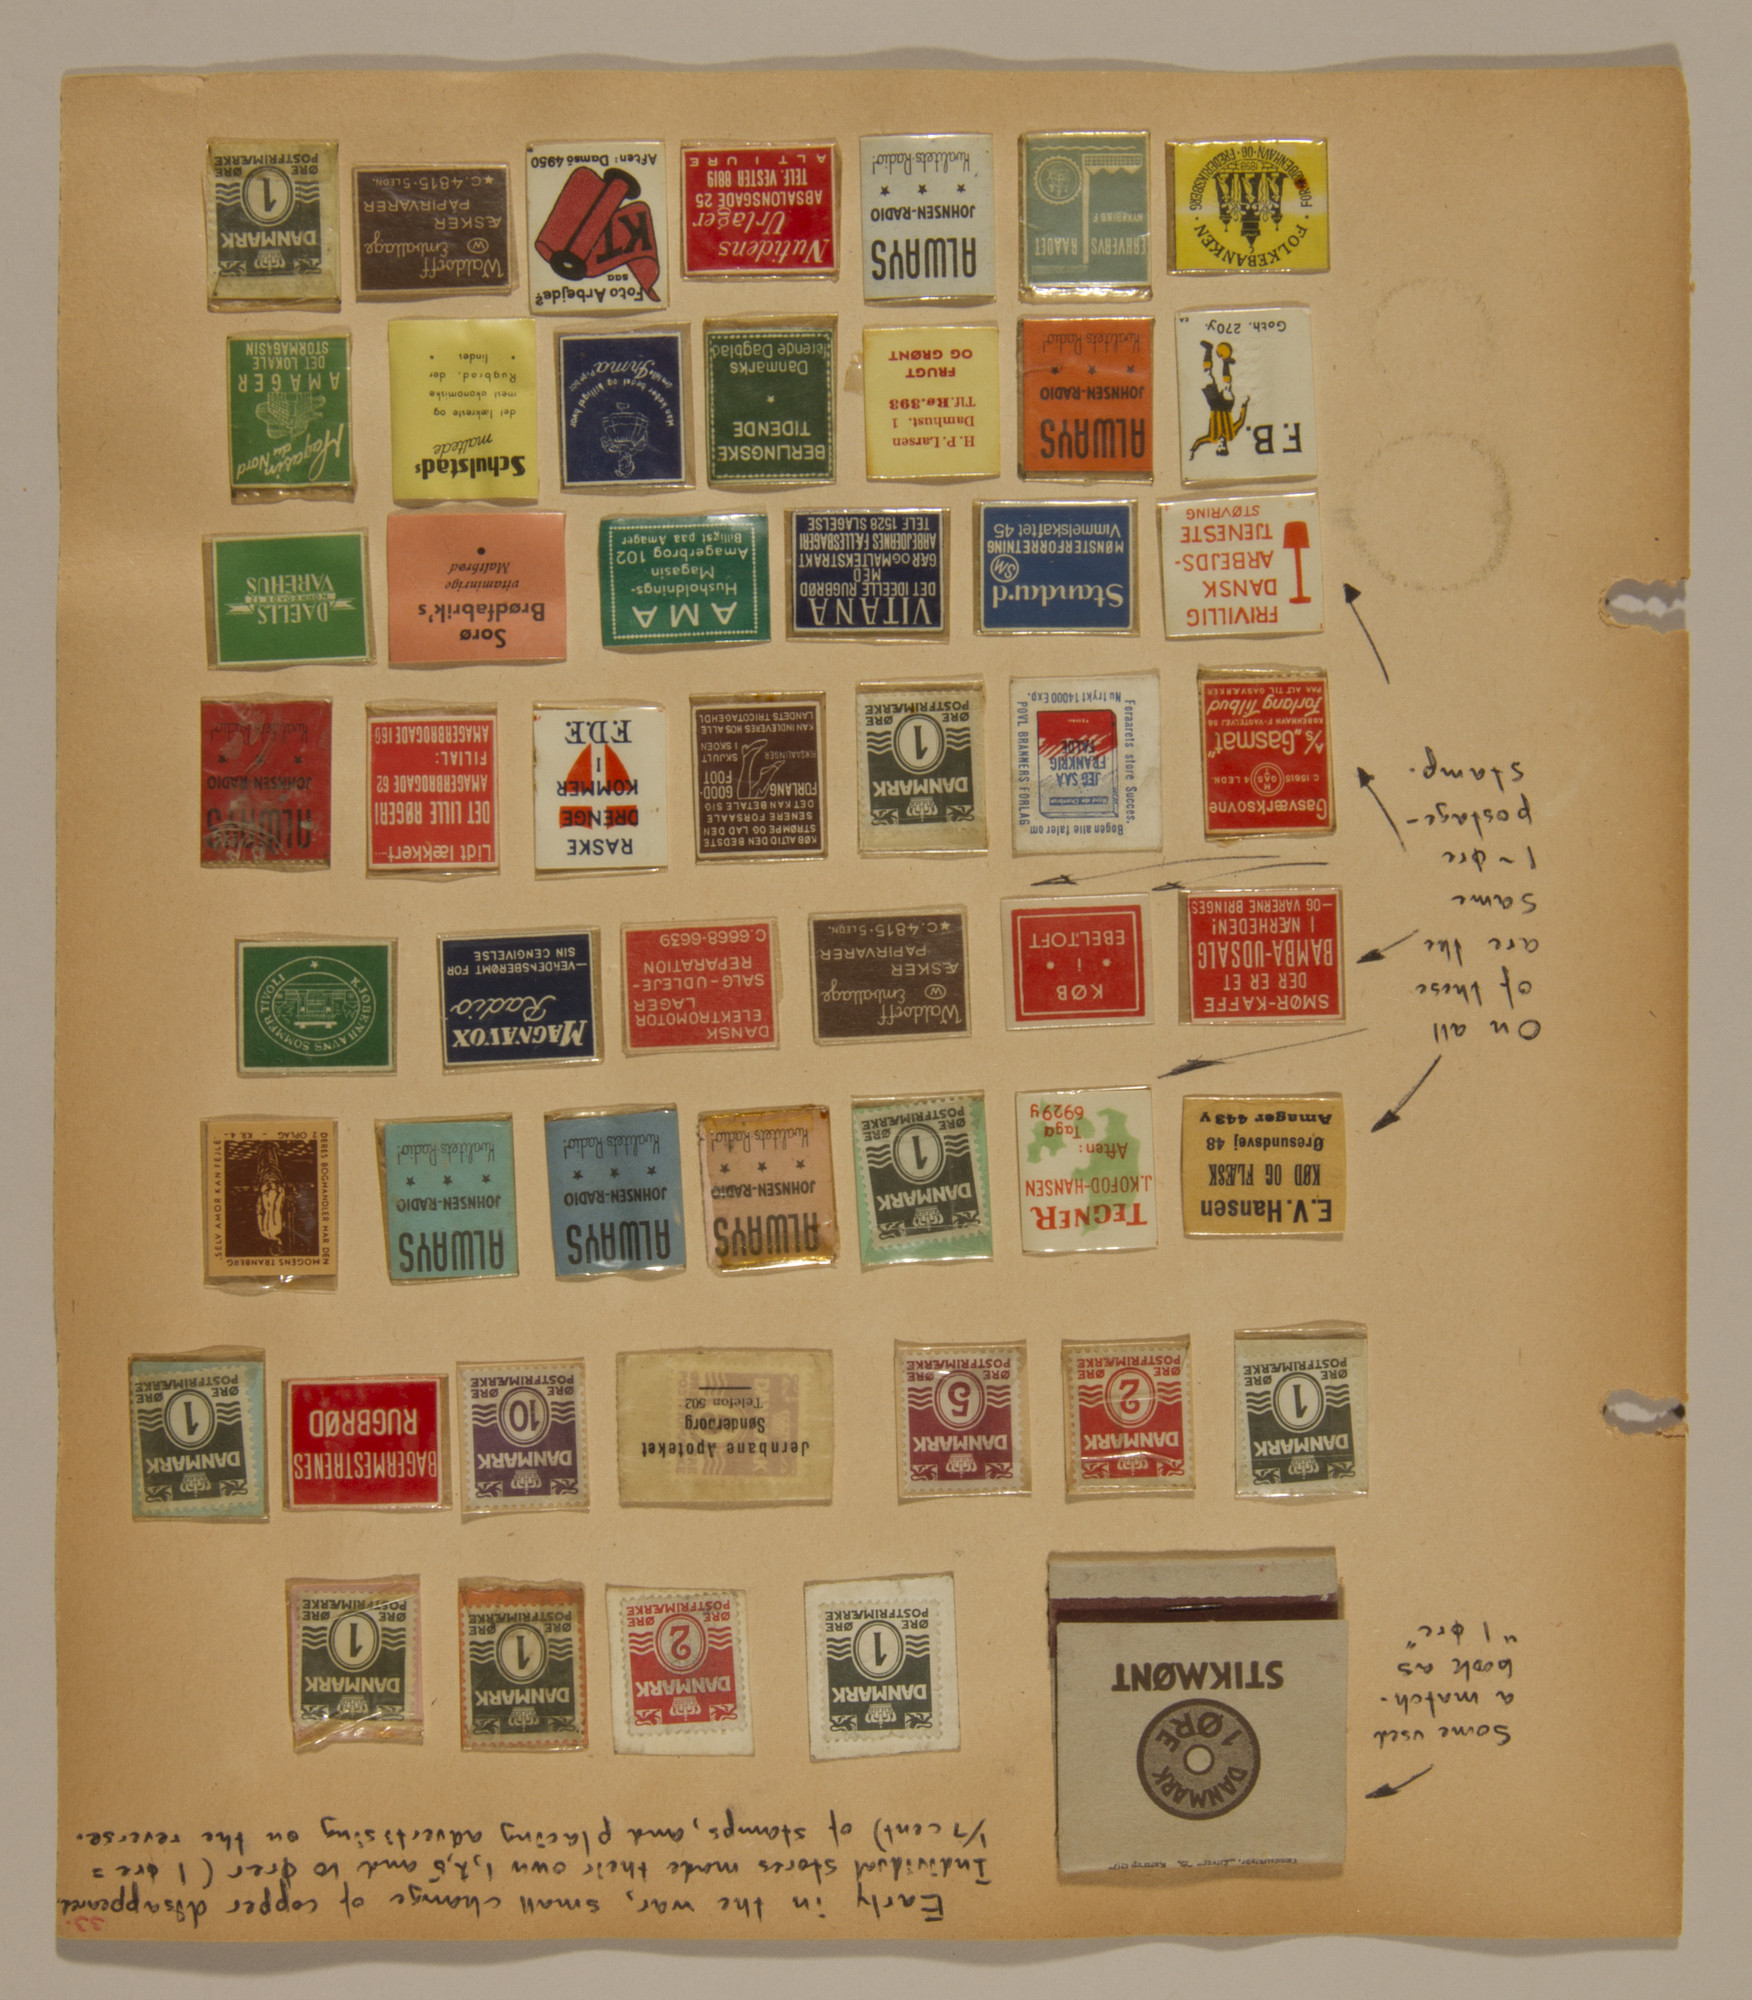 Page from volume three of a set of scrapbooks compiled by Bjorn Sibbern, a Danish policeman and resistance member, documenting the German occupation of Denmark.  This page contains stamps used instead of copper coins.